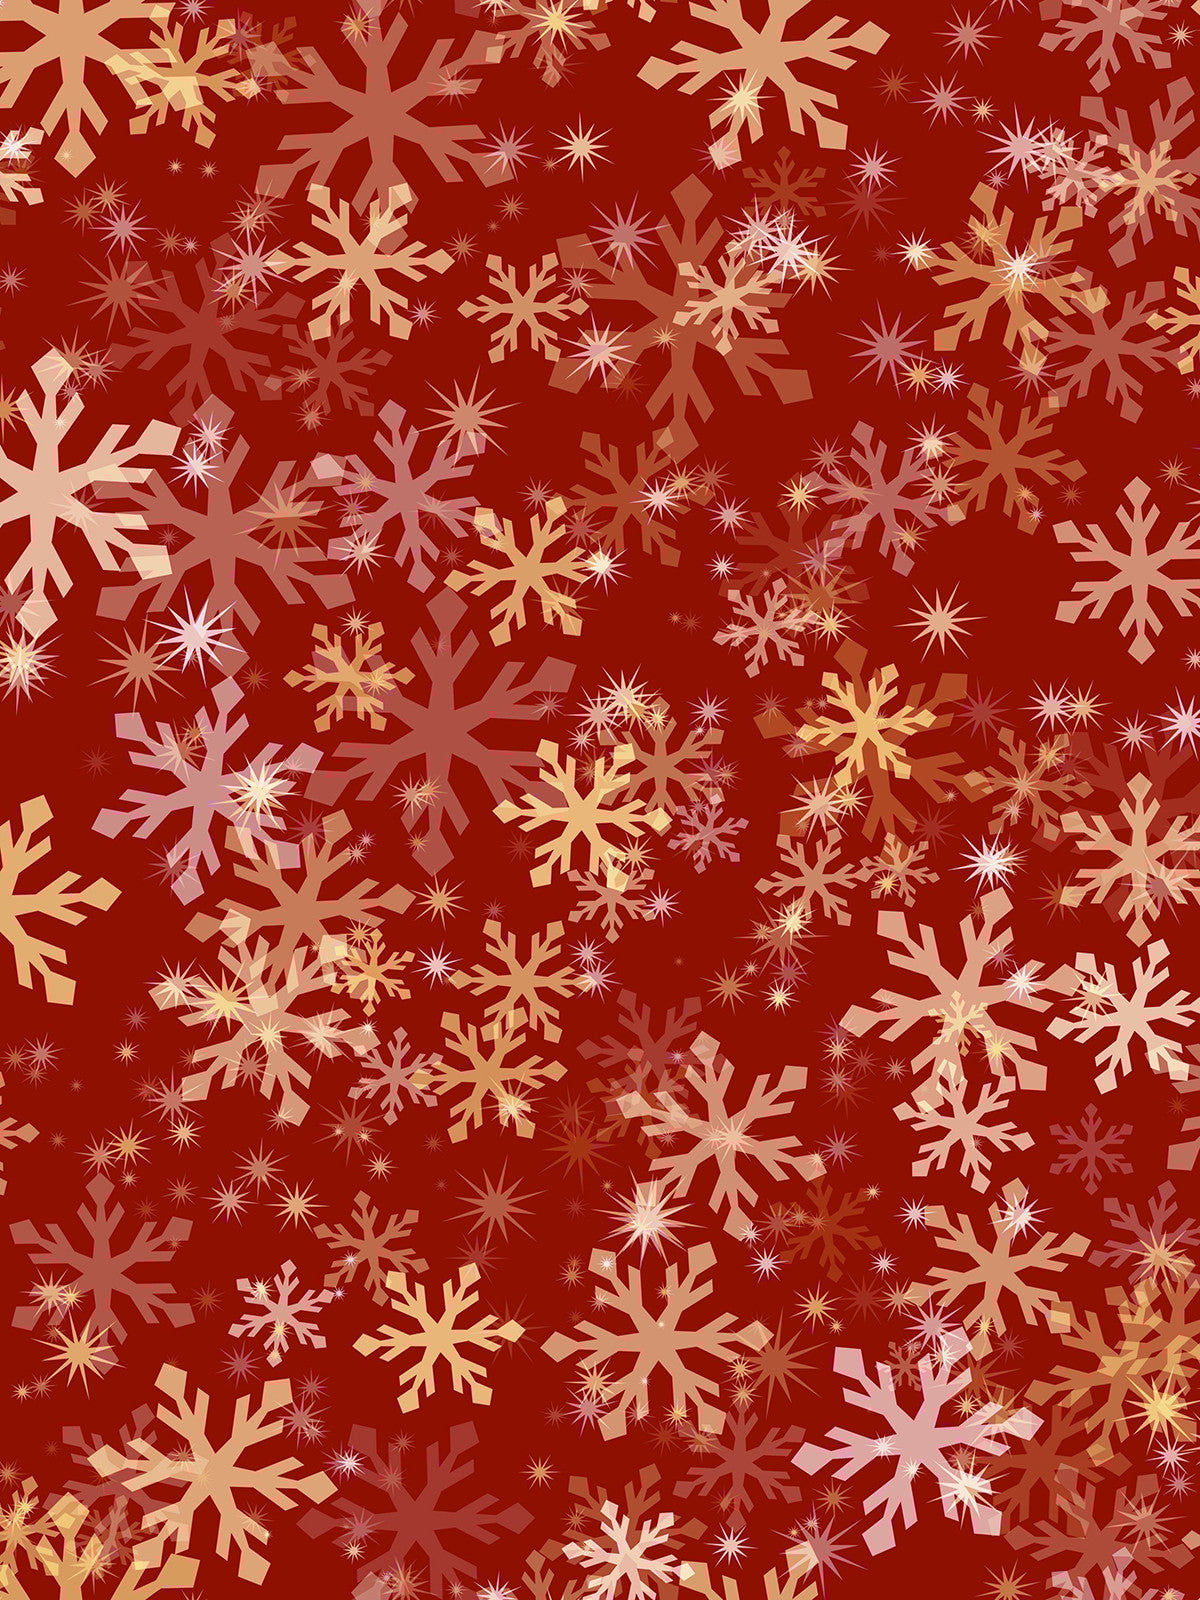 Let it Snow Printed Photography Backdrop / 9314 - DropPlace